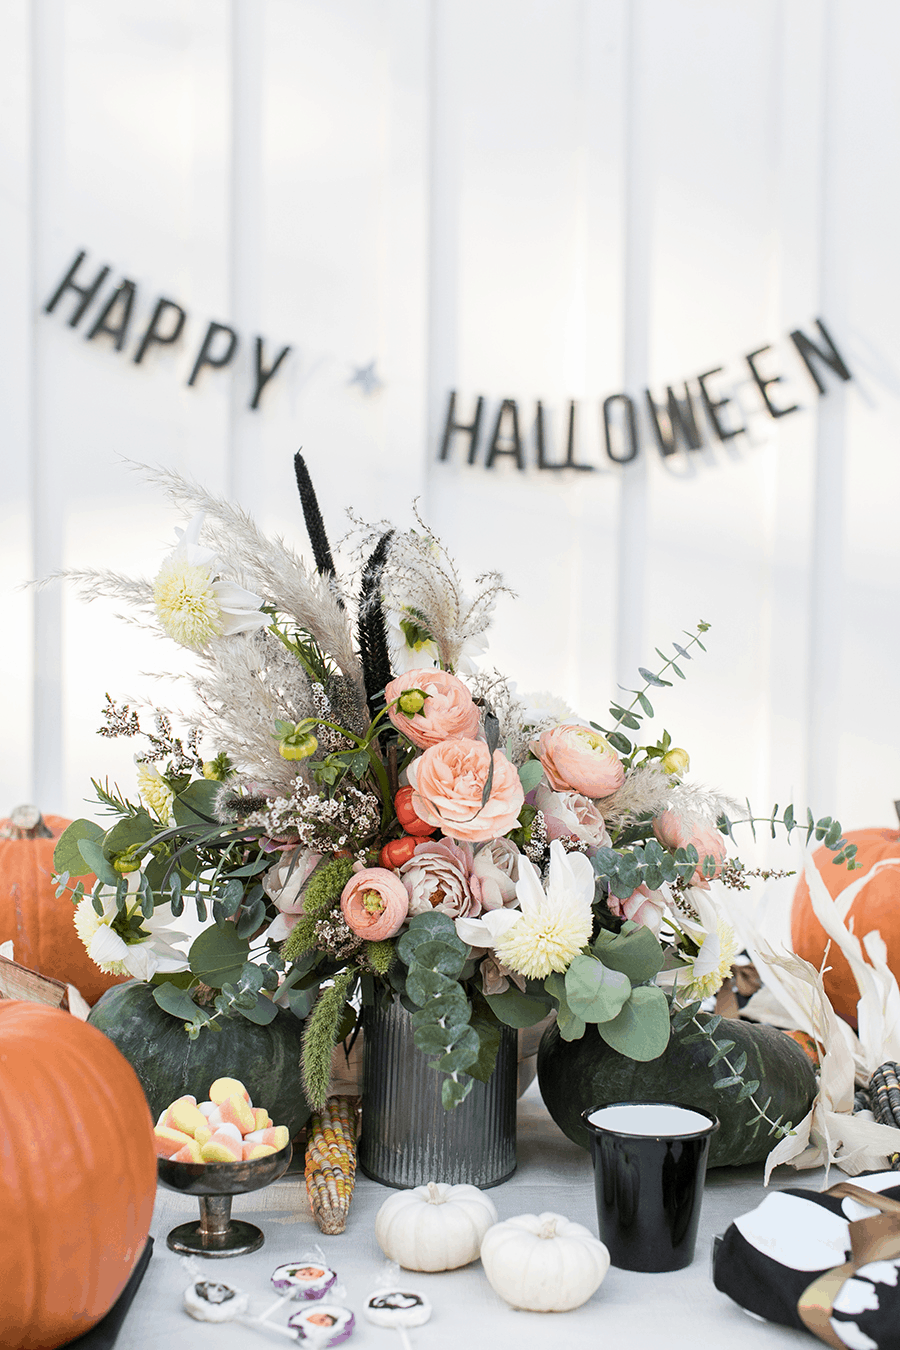 Happy Halloween sign and a galvanized vase full of flowers.